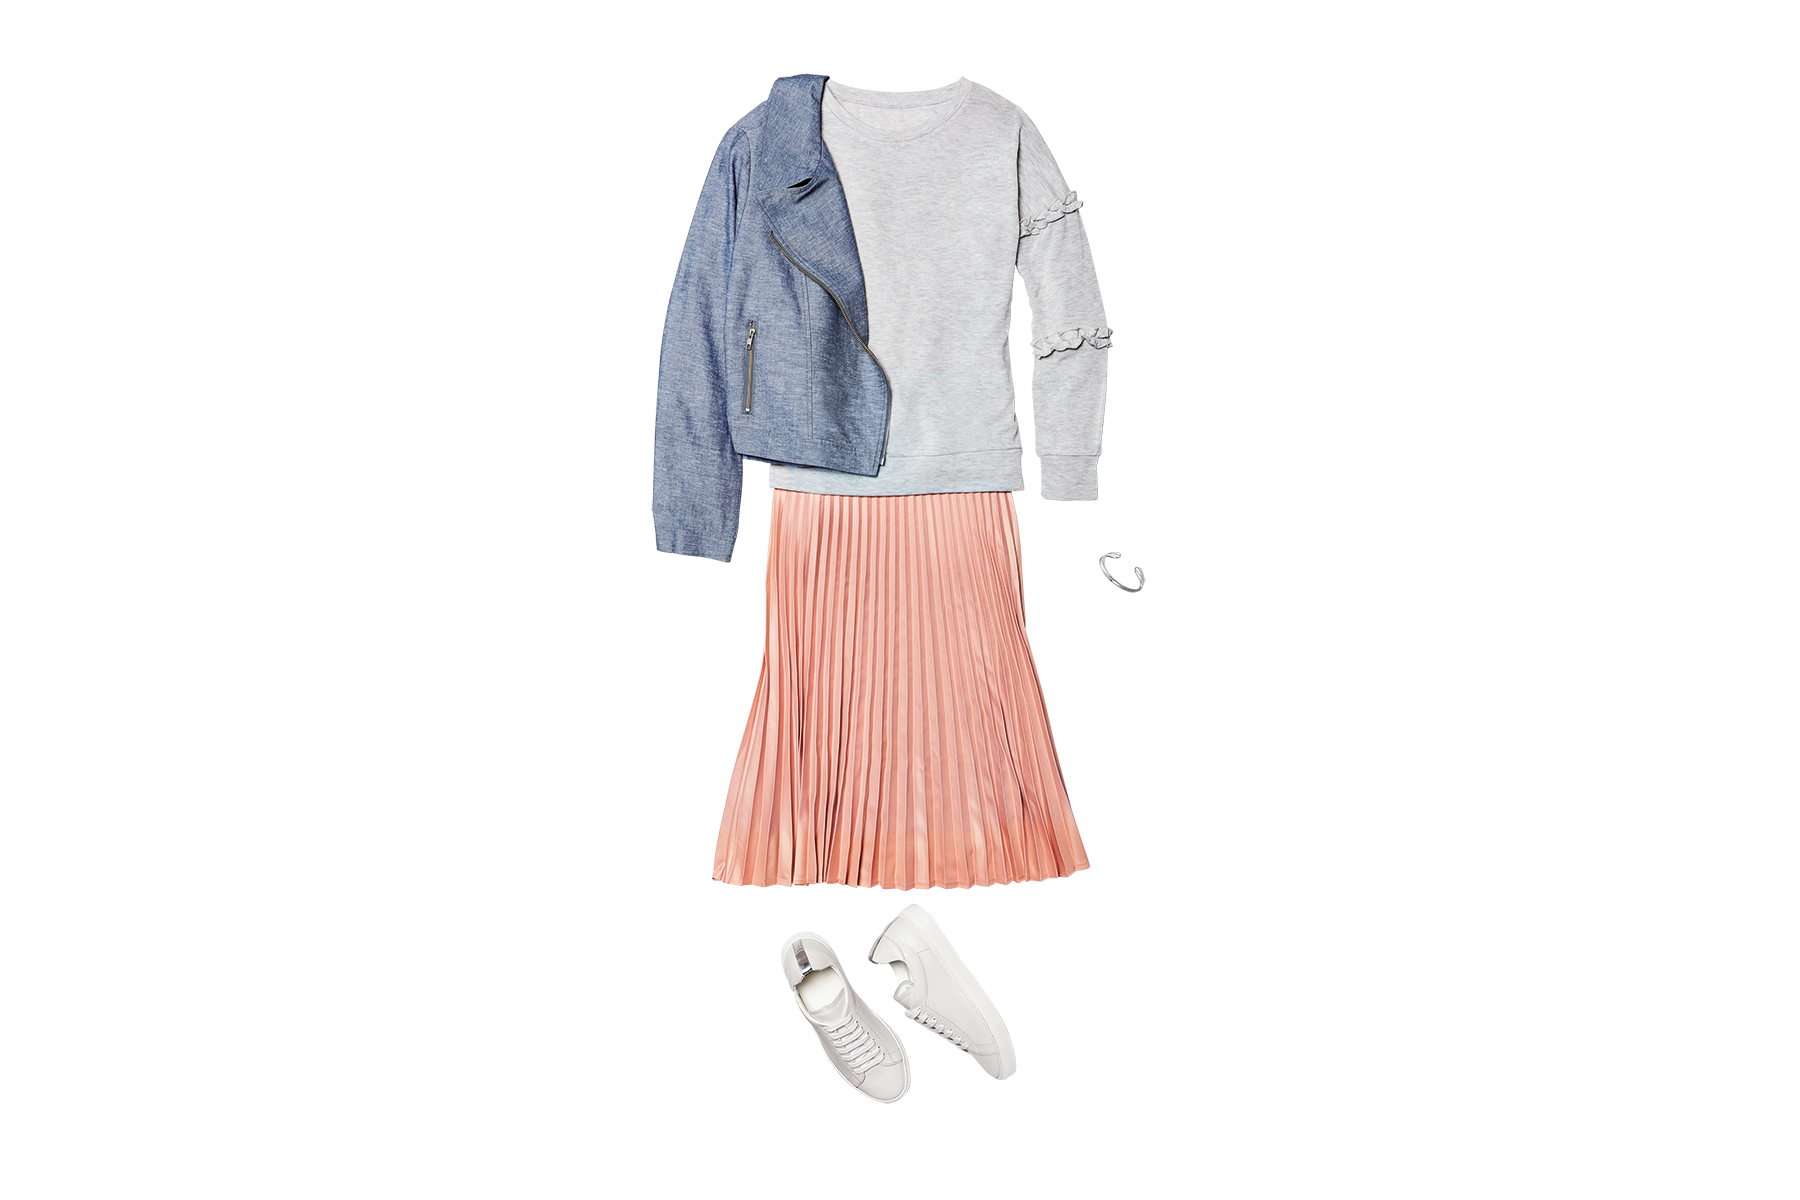 Midi Skirt + Sneakers + Sweatshirt